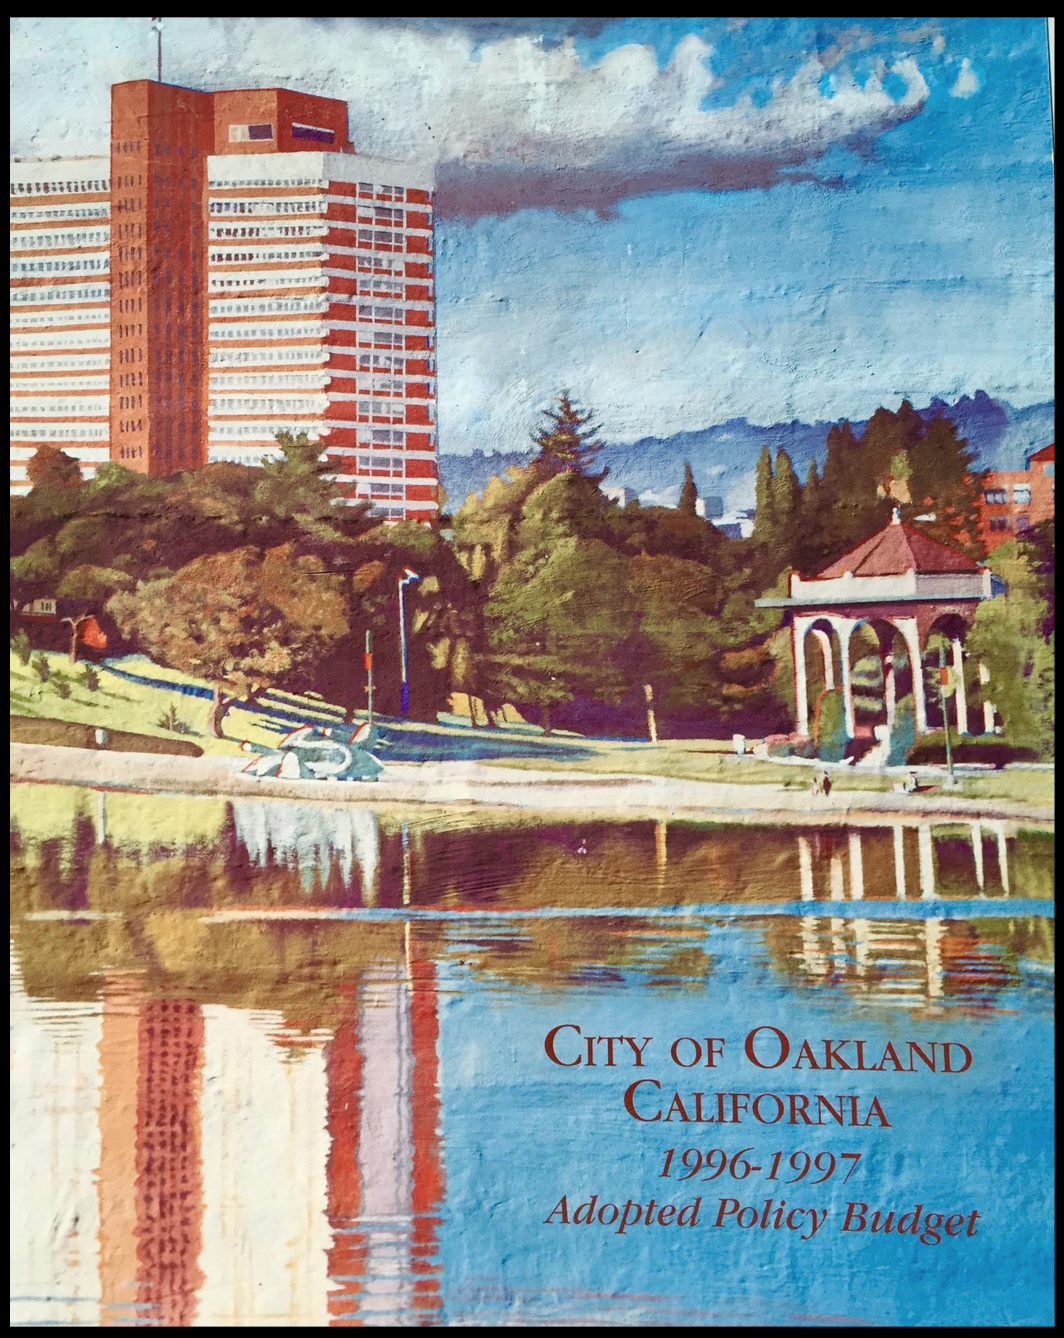 (Close up view of The Lake Merritt Mural on the cover of City of Oakland Adopted Policy Budget)